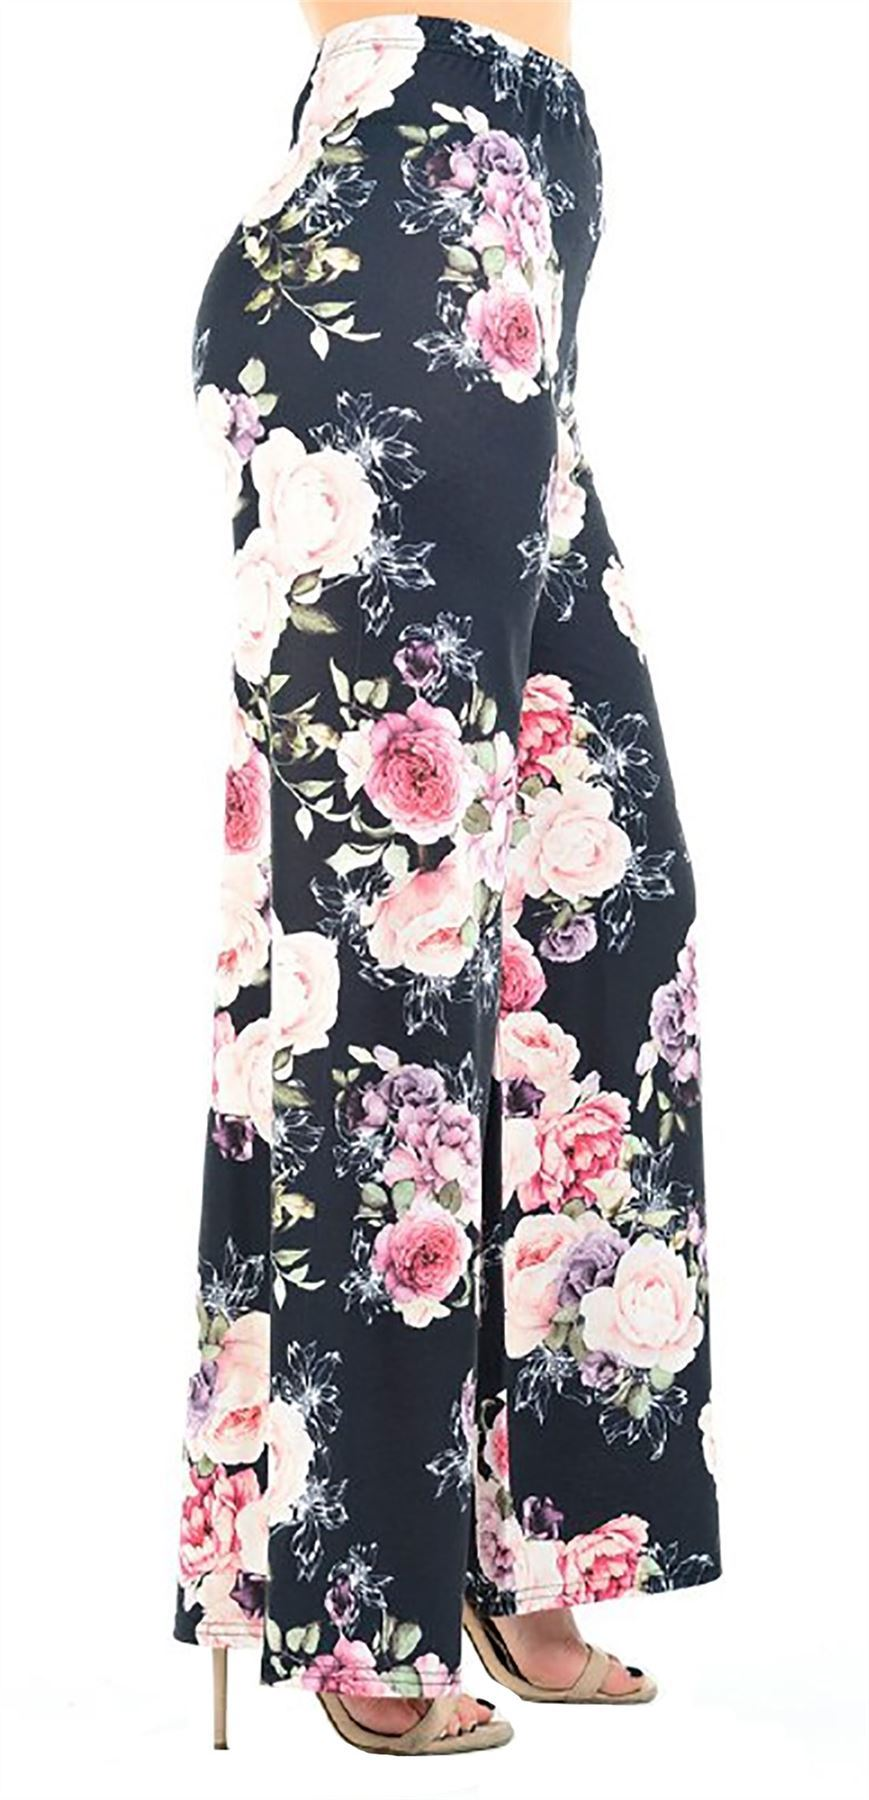 New-Ladies-Floral-Printed-Wide-Leg-Flared-Parallel-Baggy-Trousers-Pants-Palazzo thumbnail 91